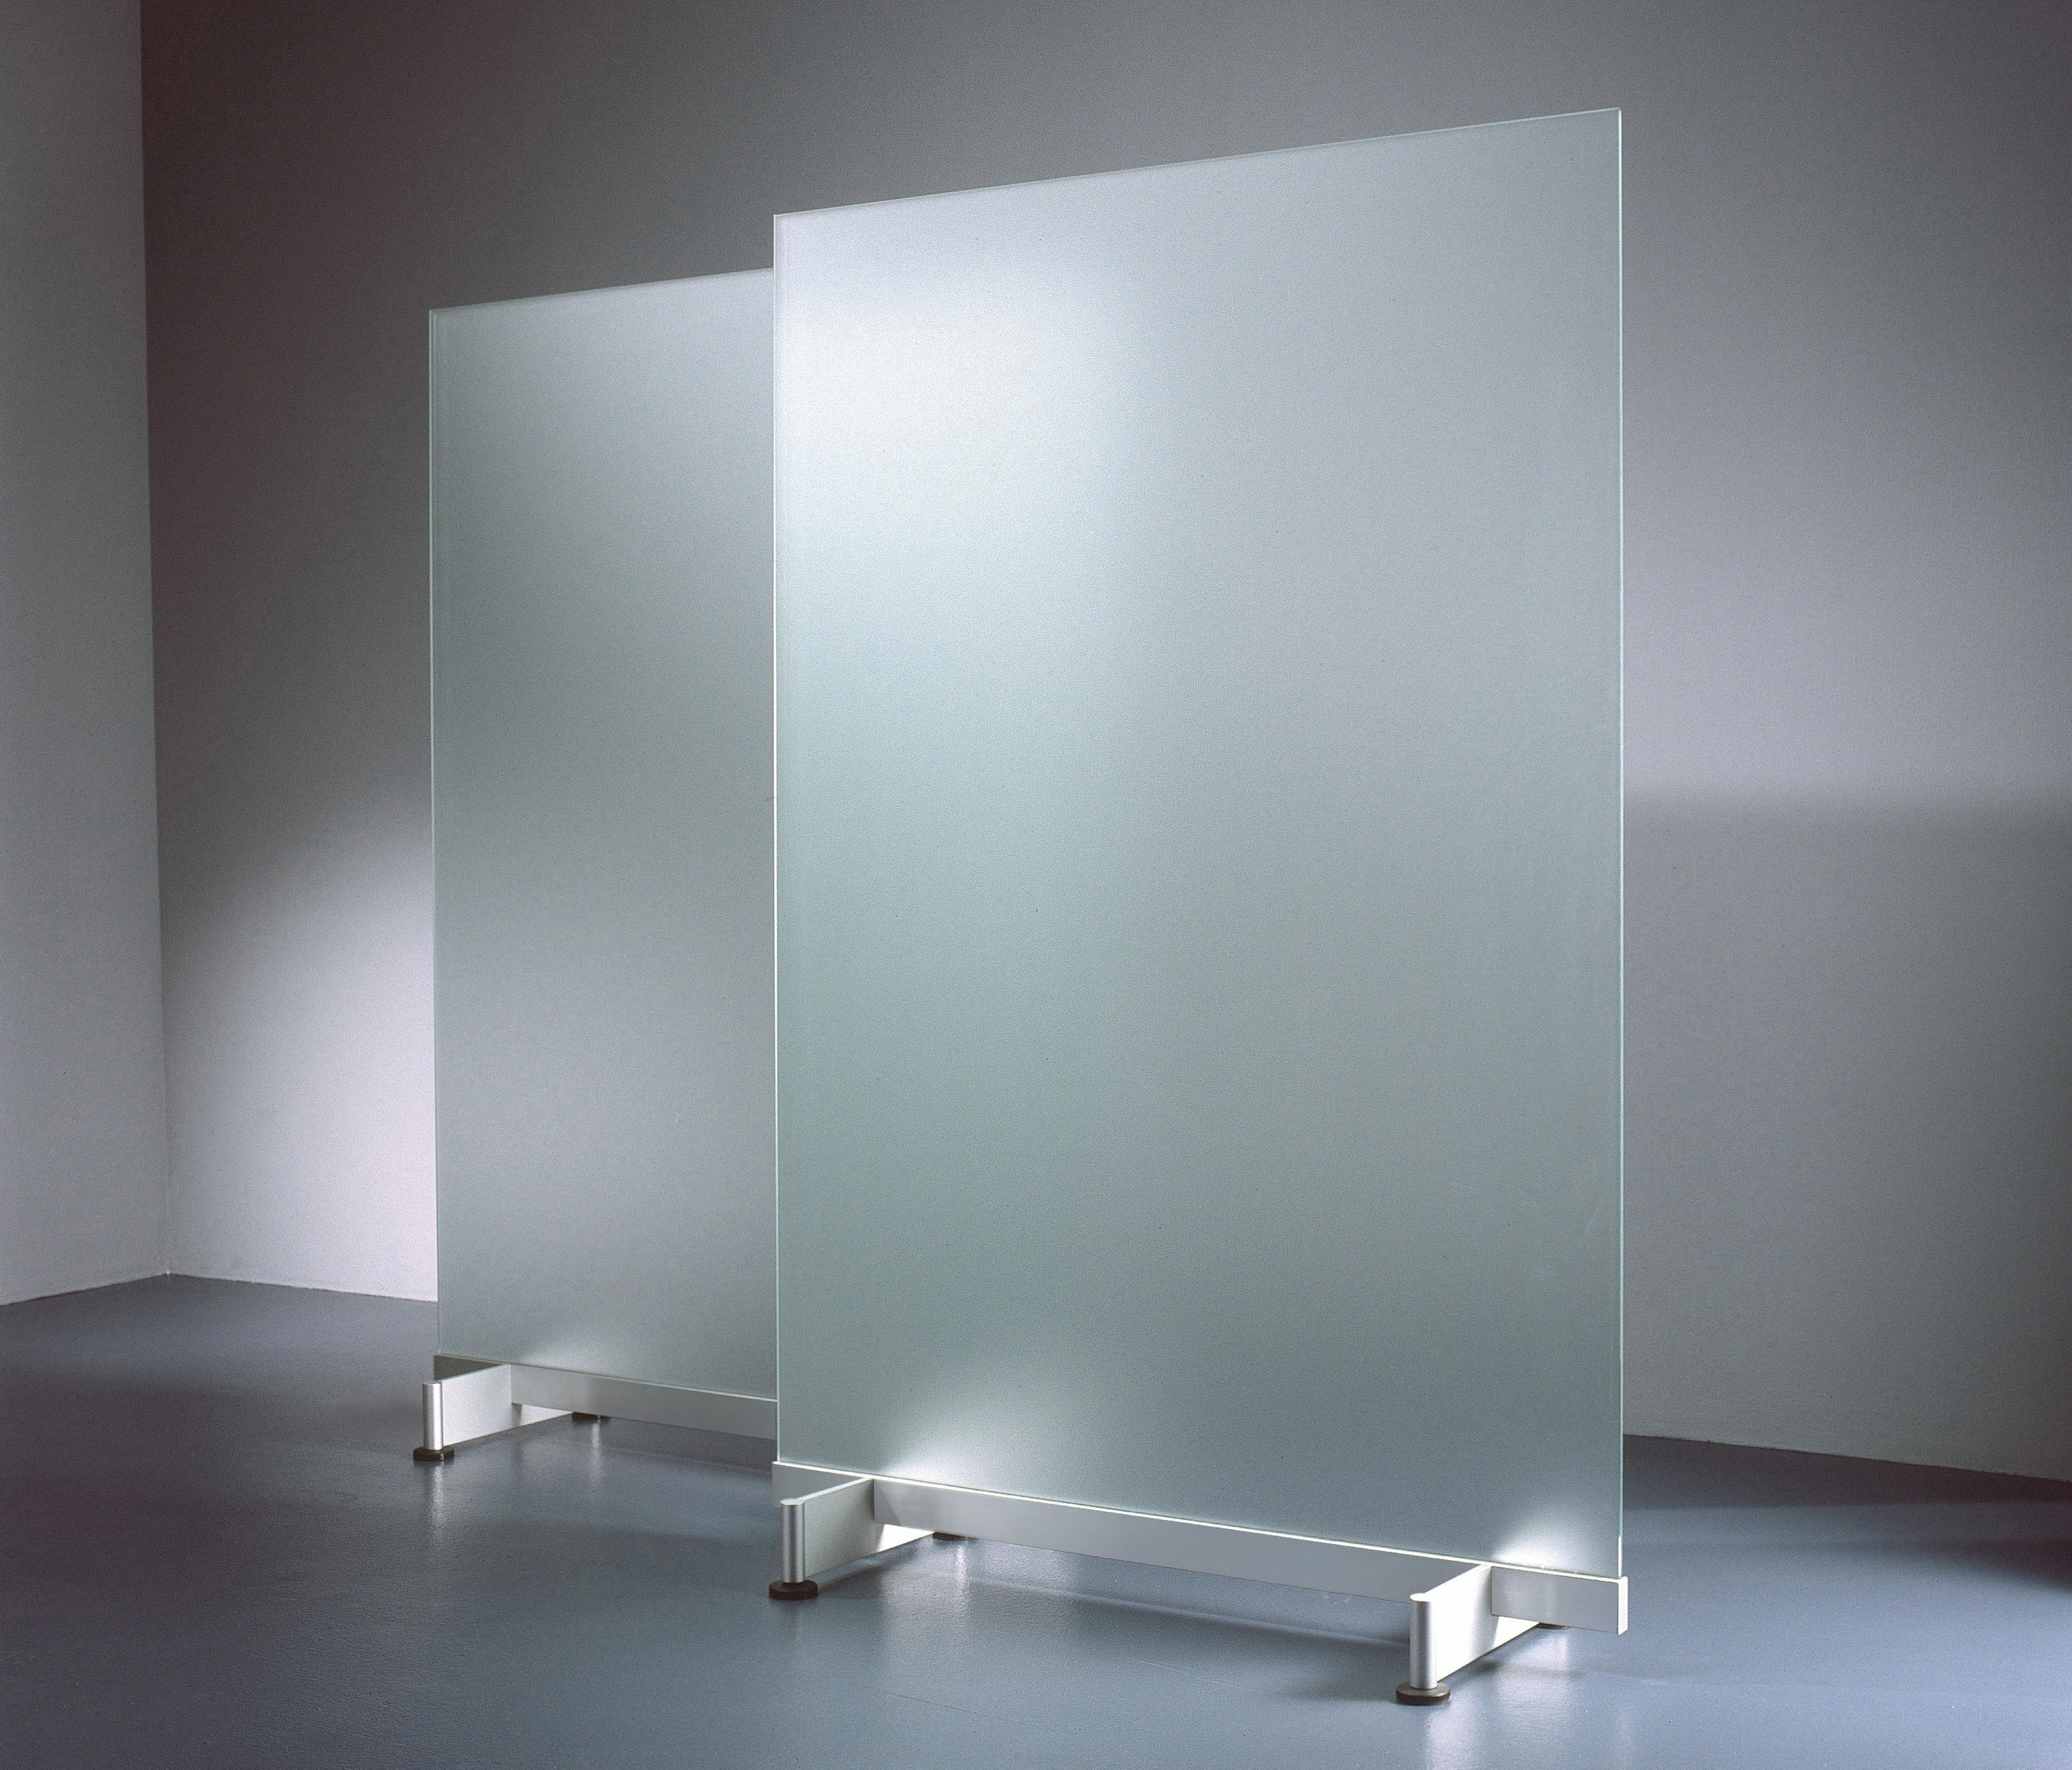 ROOM DIVIDER IN GLASS Space dividing systems from Borks Architonic